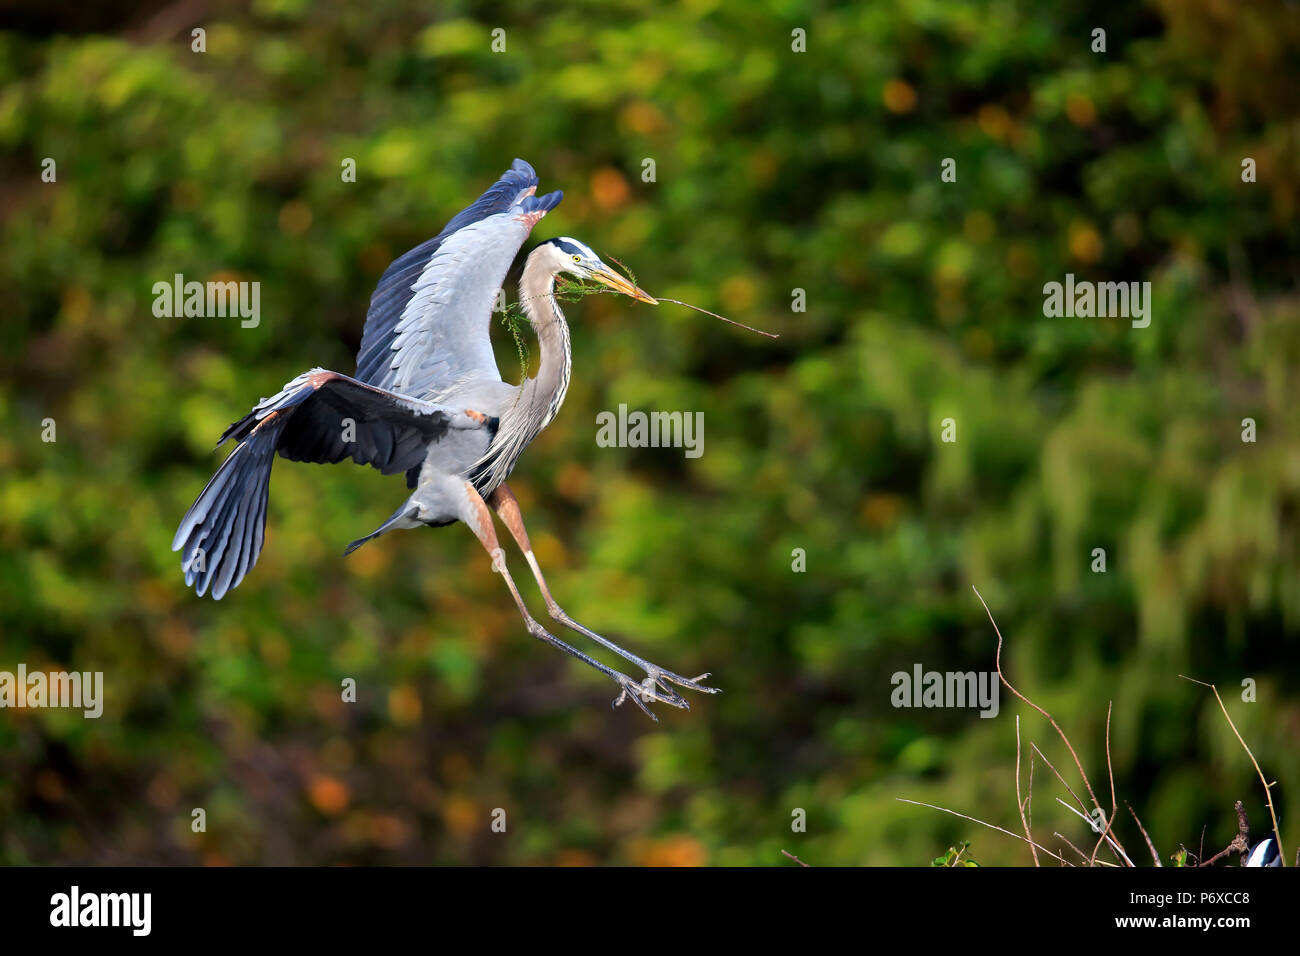 Great Blue Heron, adult flying with nesting material, Wakodahatchee Wetlands, Delray Beach, Florida, USA, Ardea herodias - Stock Image